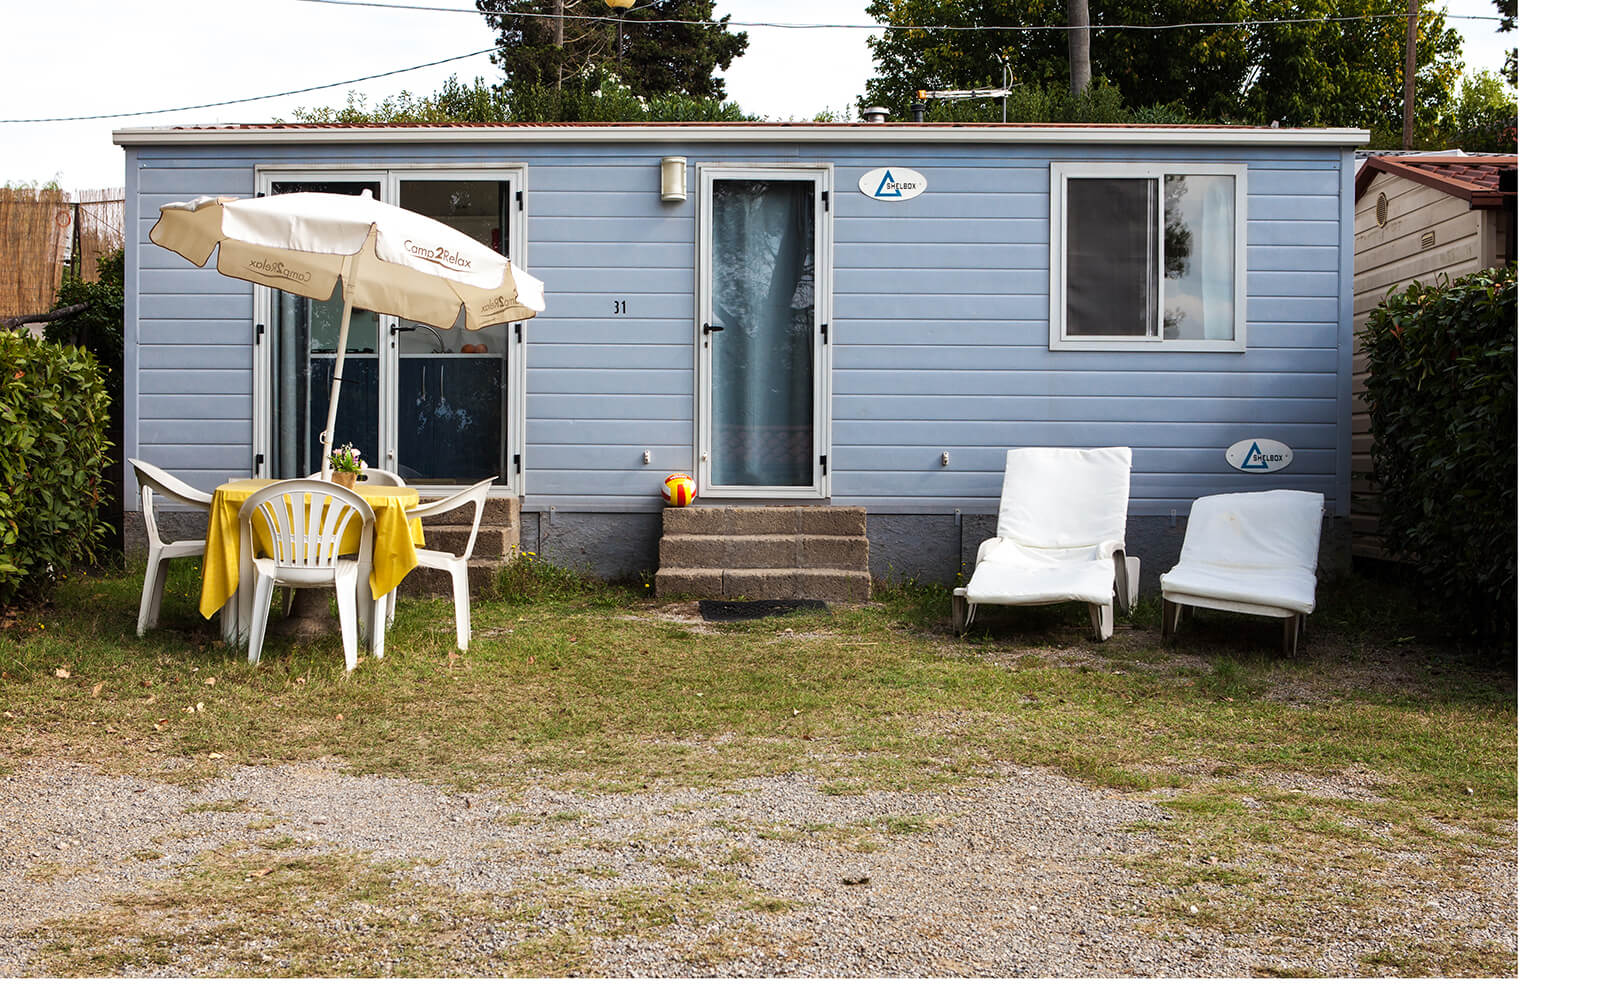 Exterior of Comfort mobile home